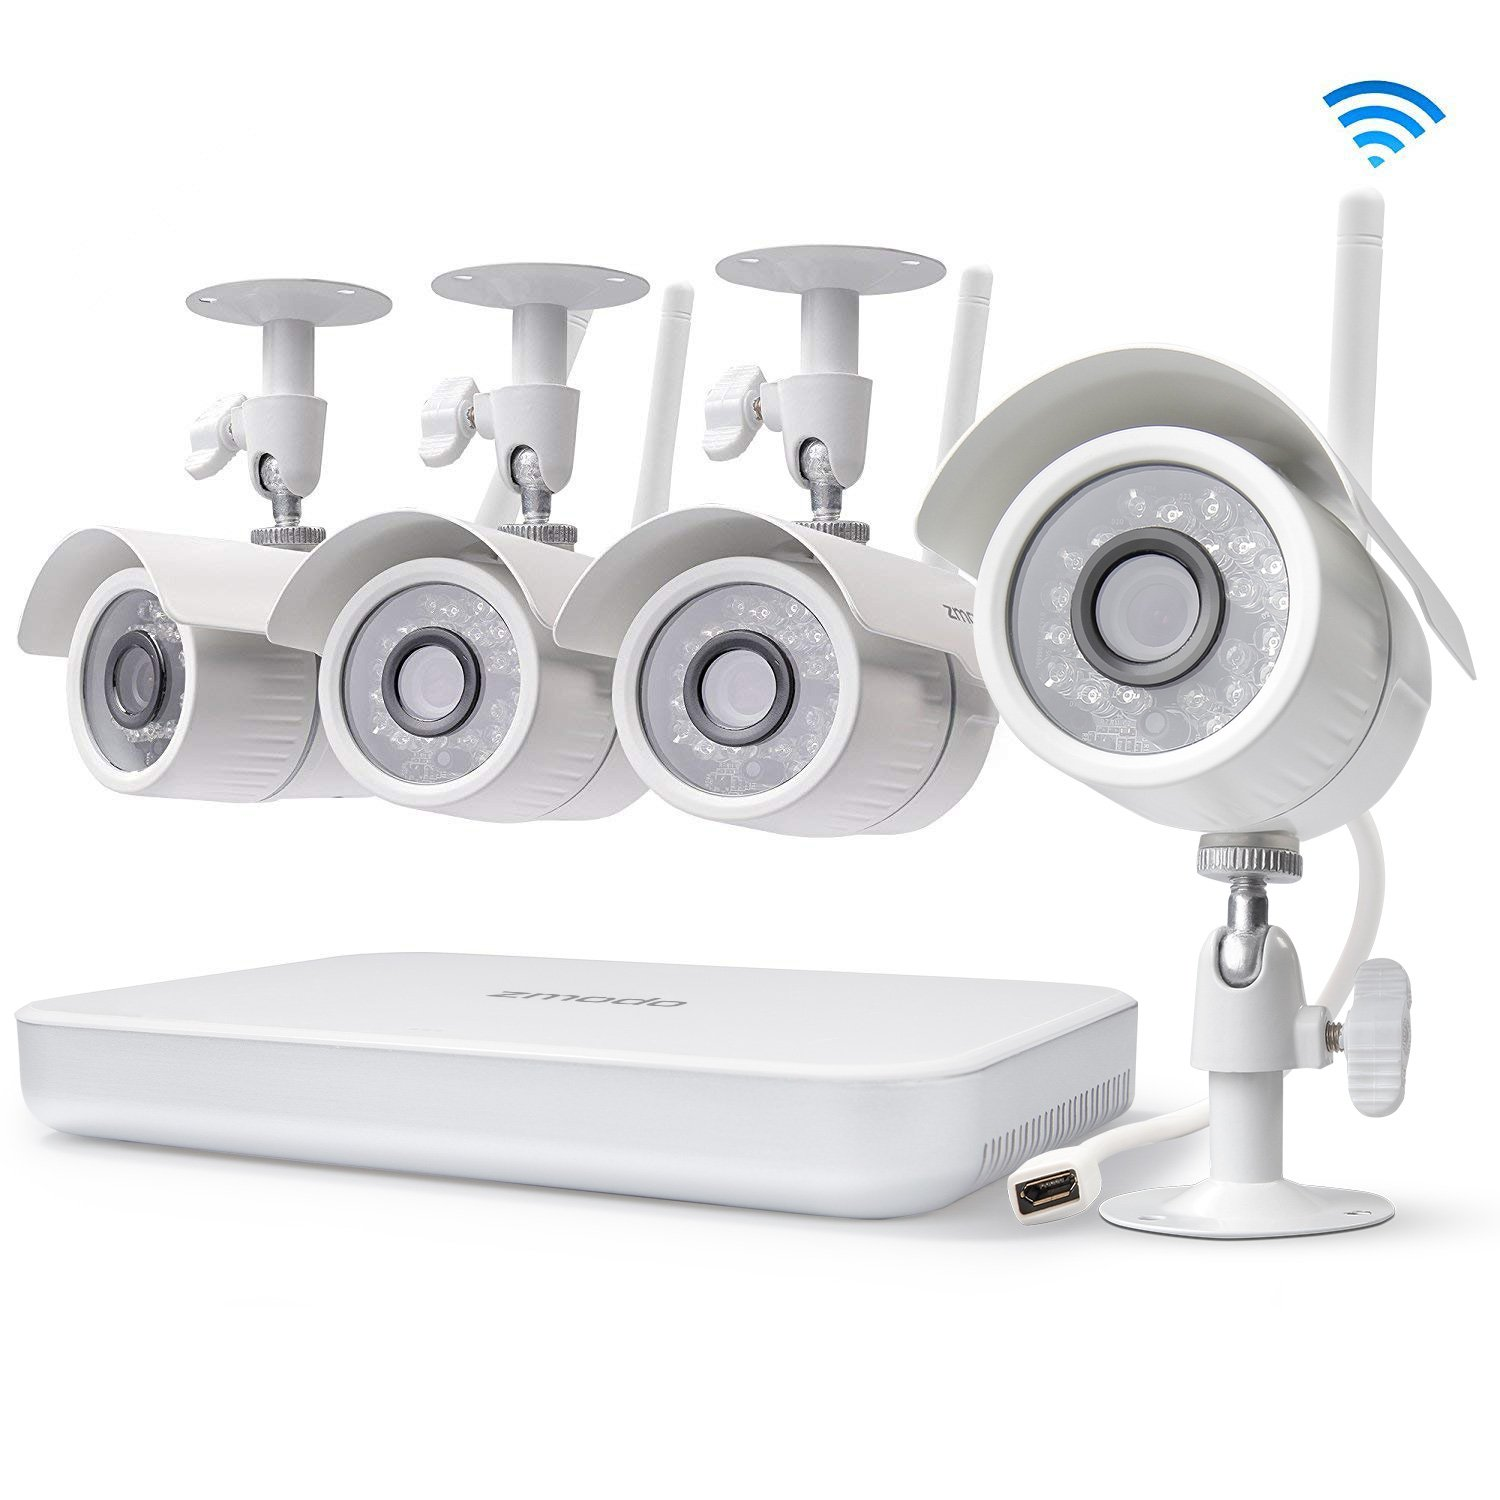 Zmodo 8CH Wireless Security Camera System - 1080P HDMI NVR No Hard Drive, 4 x 720P HD Indoor/Outdoor Wireless Cameras Night Vision - WiFi Easy Installation No Video Cables Needed